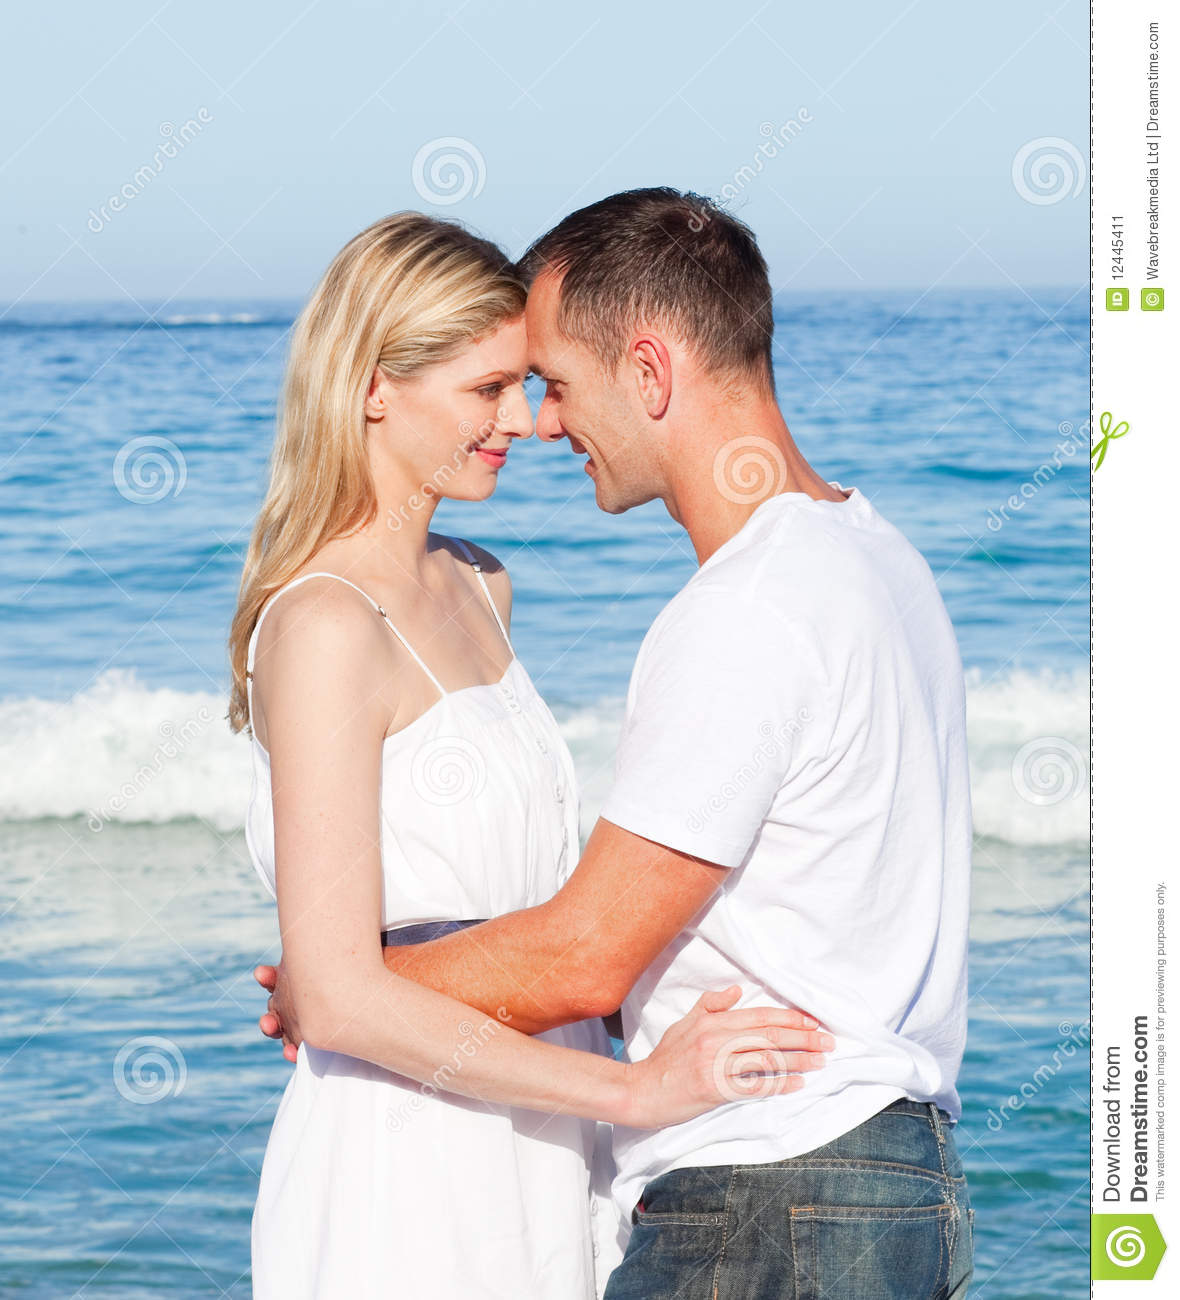 Couple At The Beach Stock Image Image Of Caucasian: Loving Couple Cuddling At The Beach Stock Image